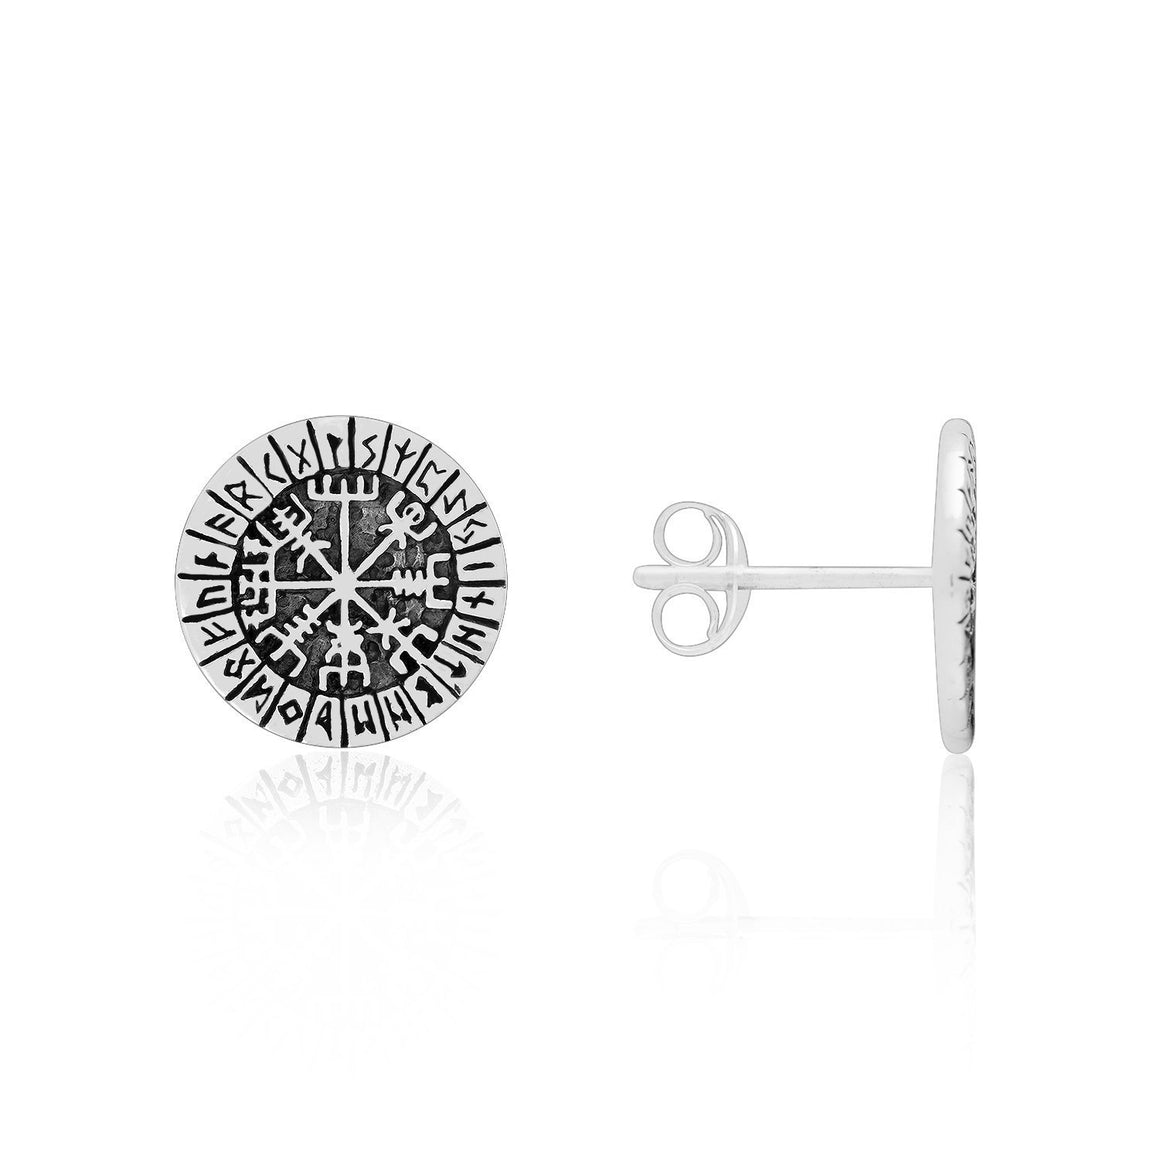 925 Sterling Silver Viking Vegvisir Compass with Norse Runes Stud Earrings Set